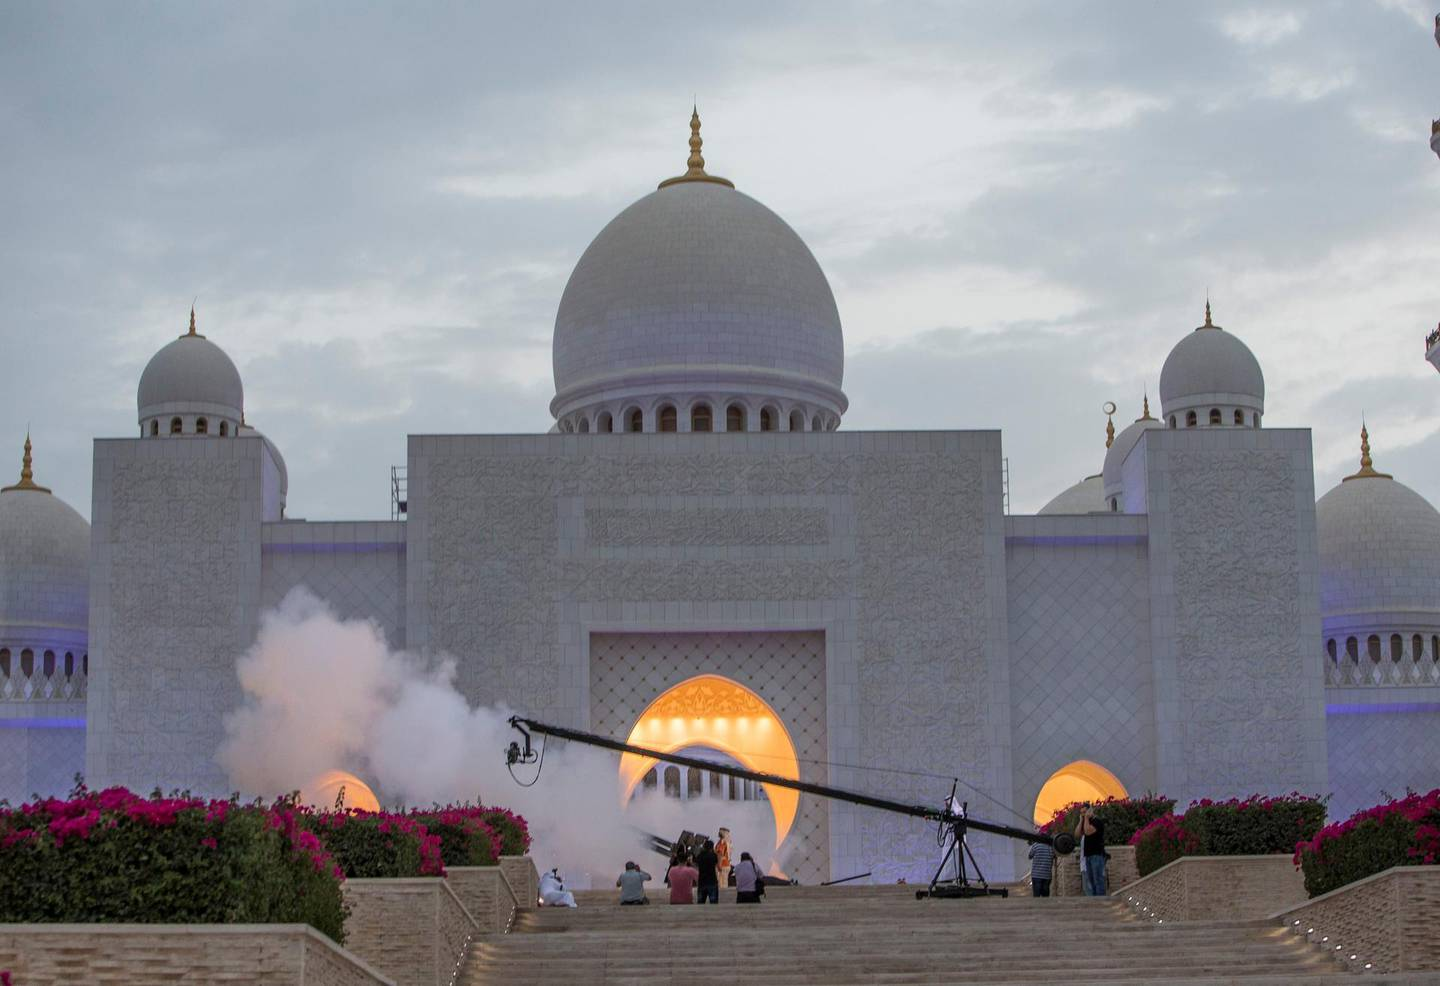 ABU DHABI, UNITED ARAB EMIRATES, 17 May 2018 -Cannon fired to end the fasting at Sheikh Zayed Grand Mosque, Abu Dhabi. Leslie Pableo for The National